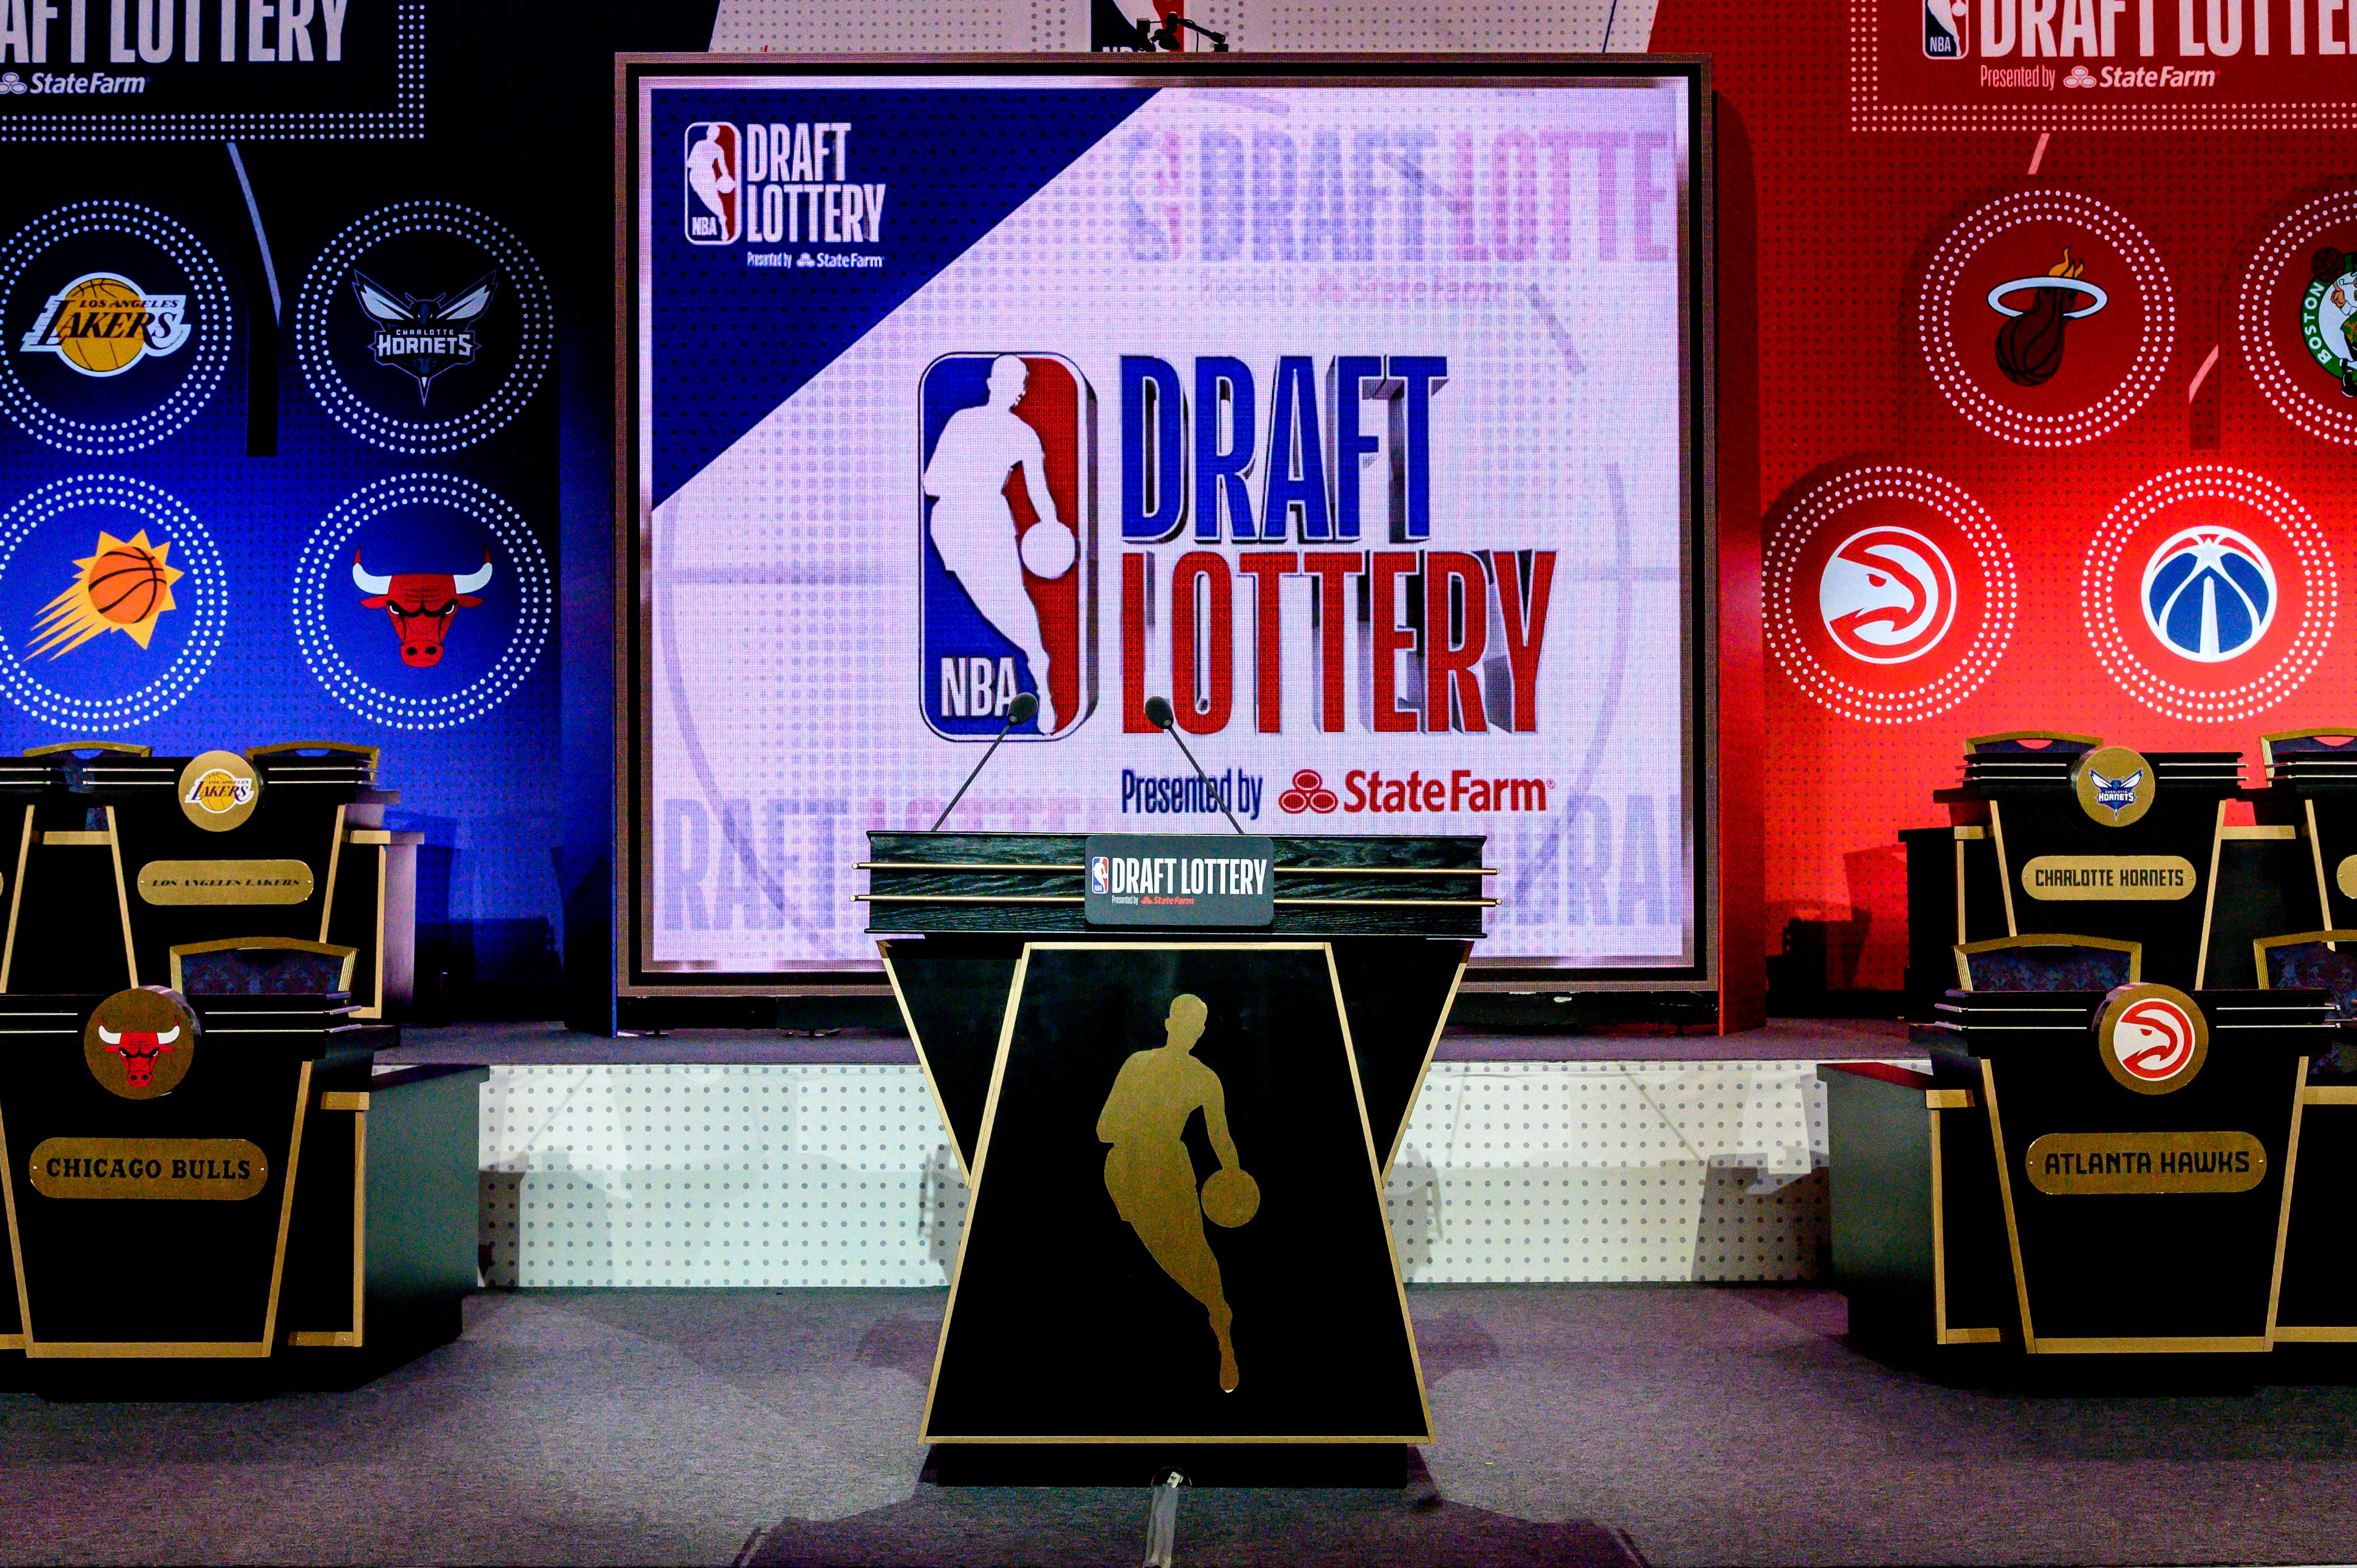 2021 NBA draft lottery: Schedule, odds and everything to know